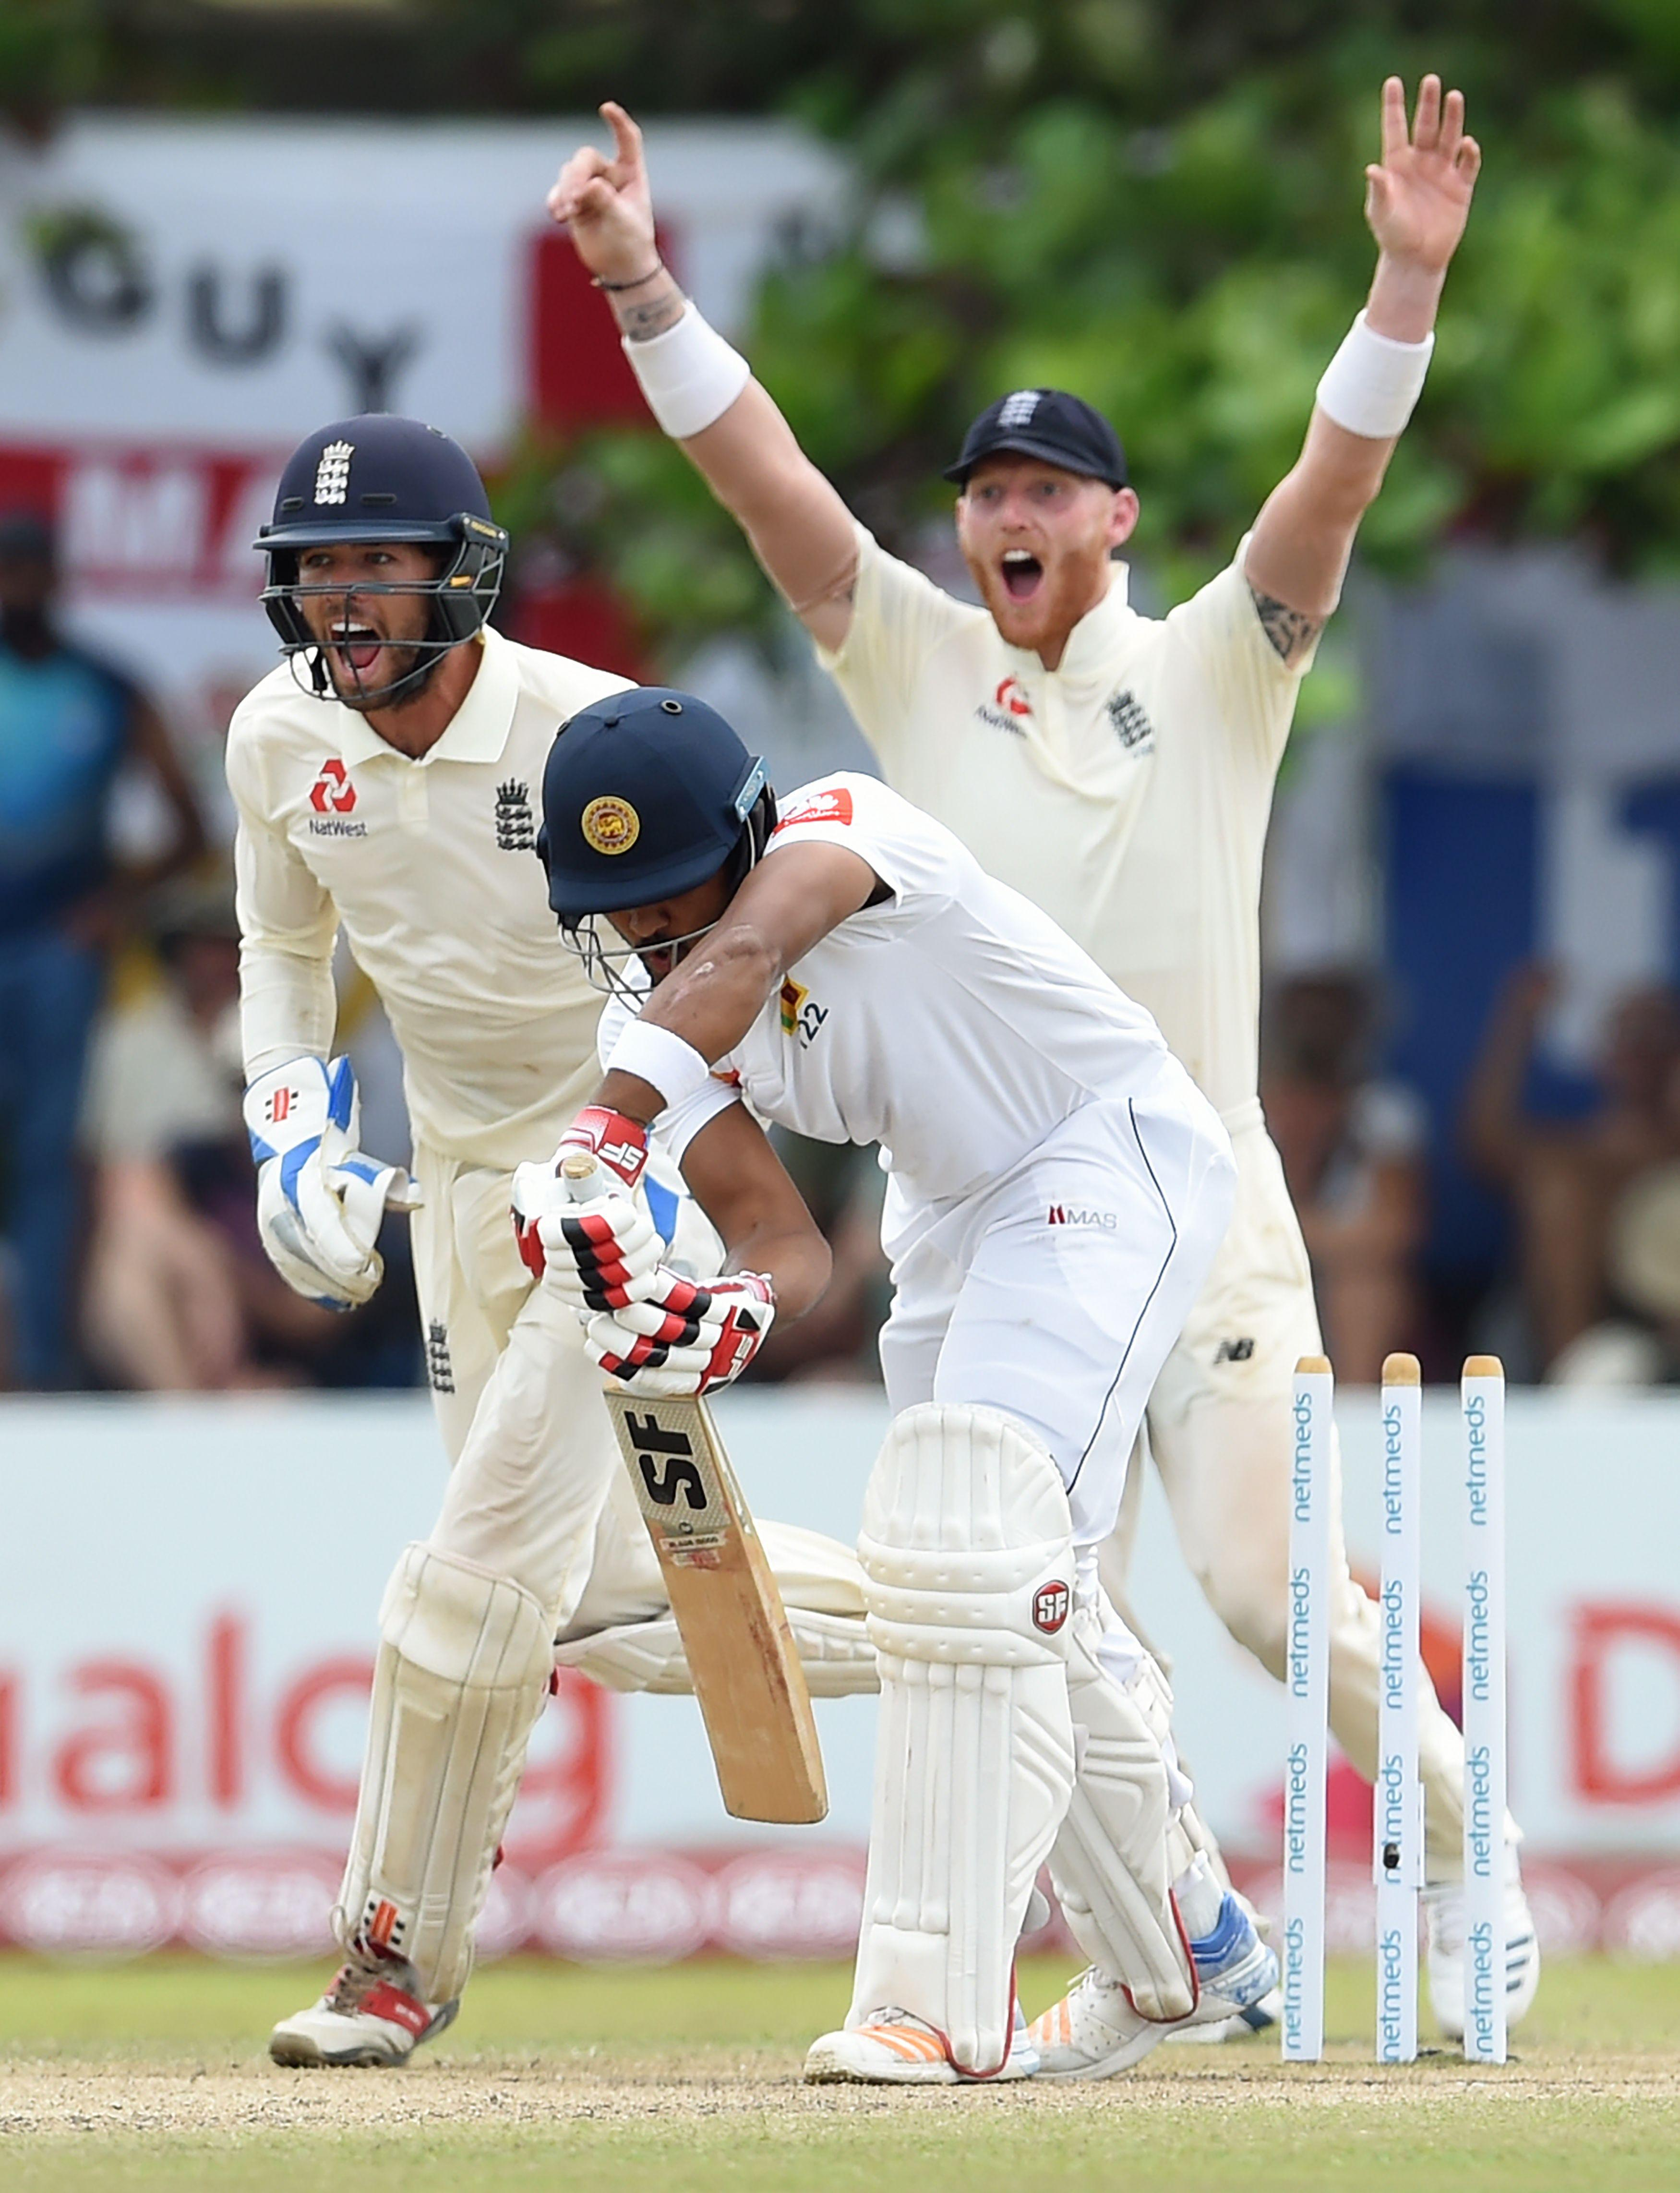 England won by 211 runs ending a miserable away run of 13 matches without victory